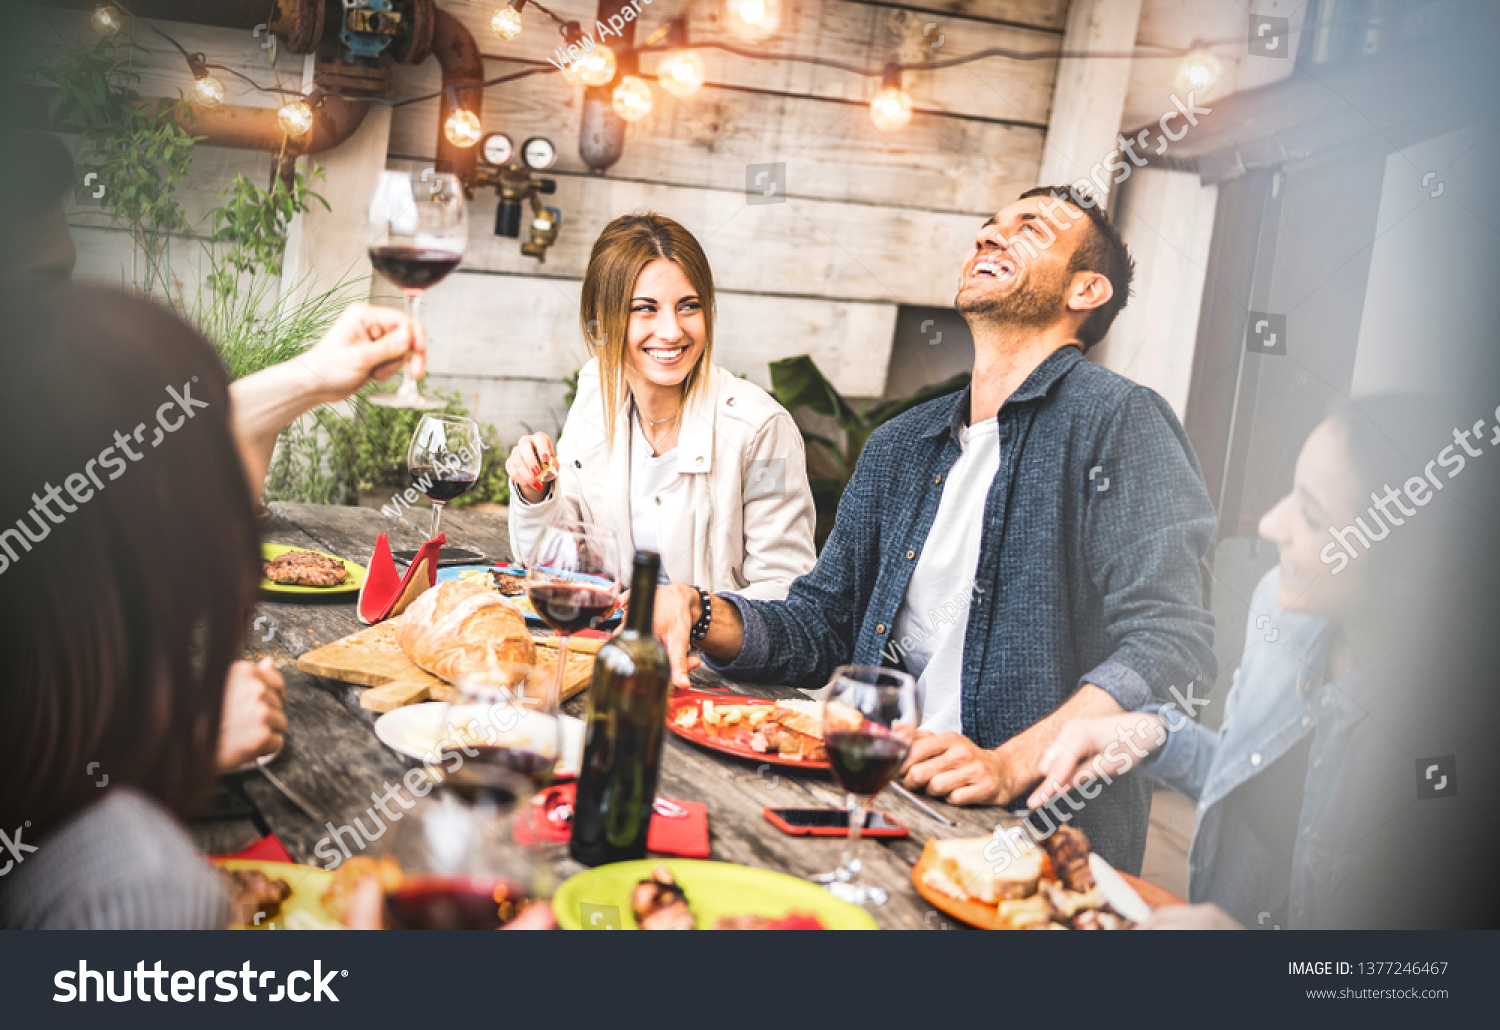 Young friends having fun drinking red wine on balcony at house dinner party - Happy people eating bbq food at fancy alternative restaurant together - Dining lifestyle concept on desaturated filter #1377246467